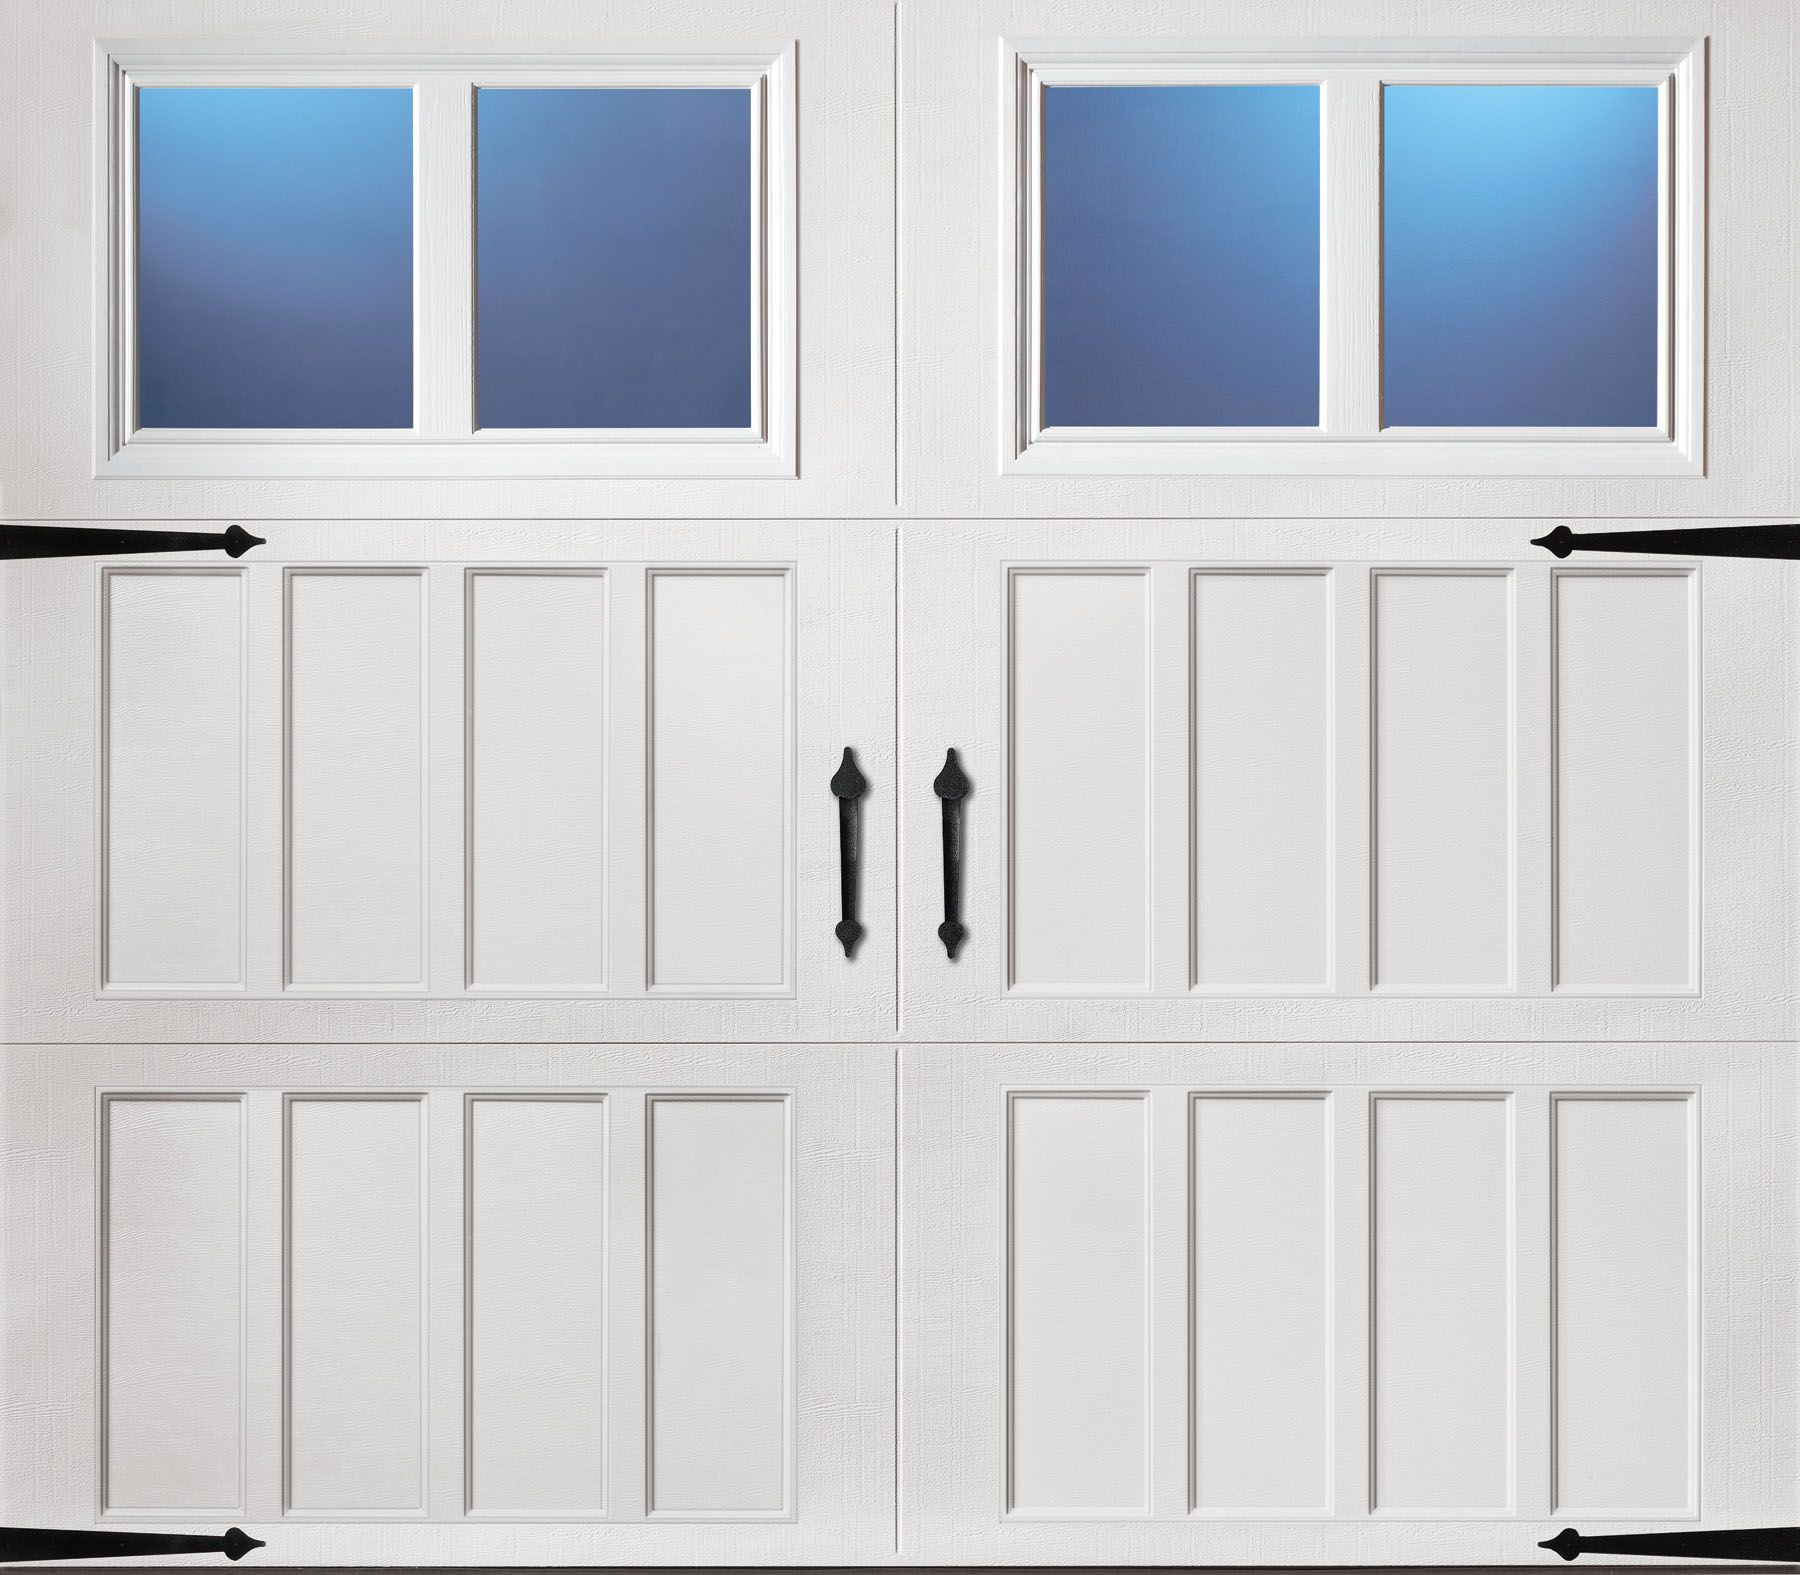 Classica northampton garage door white 9 x 8 no windows - Amarr Classica Santiago Closed Arch S1 8x7 Amarr Classica Pinterest Carriage House Garage Doors And Arch